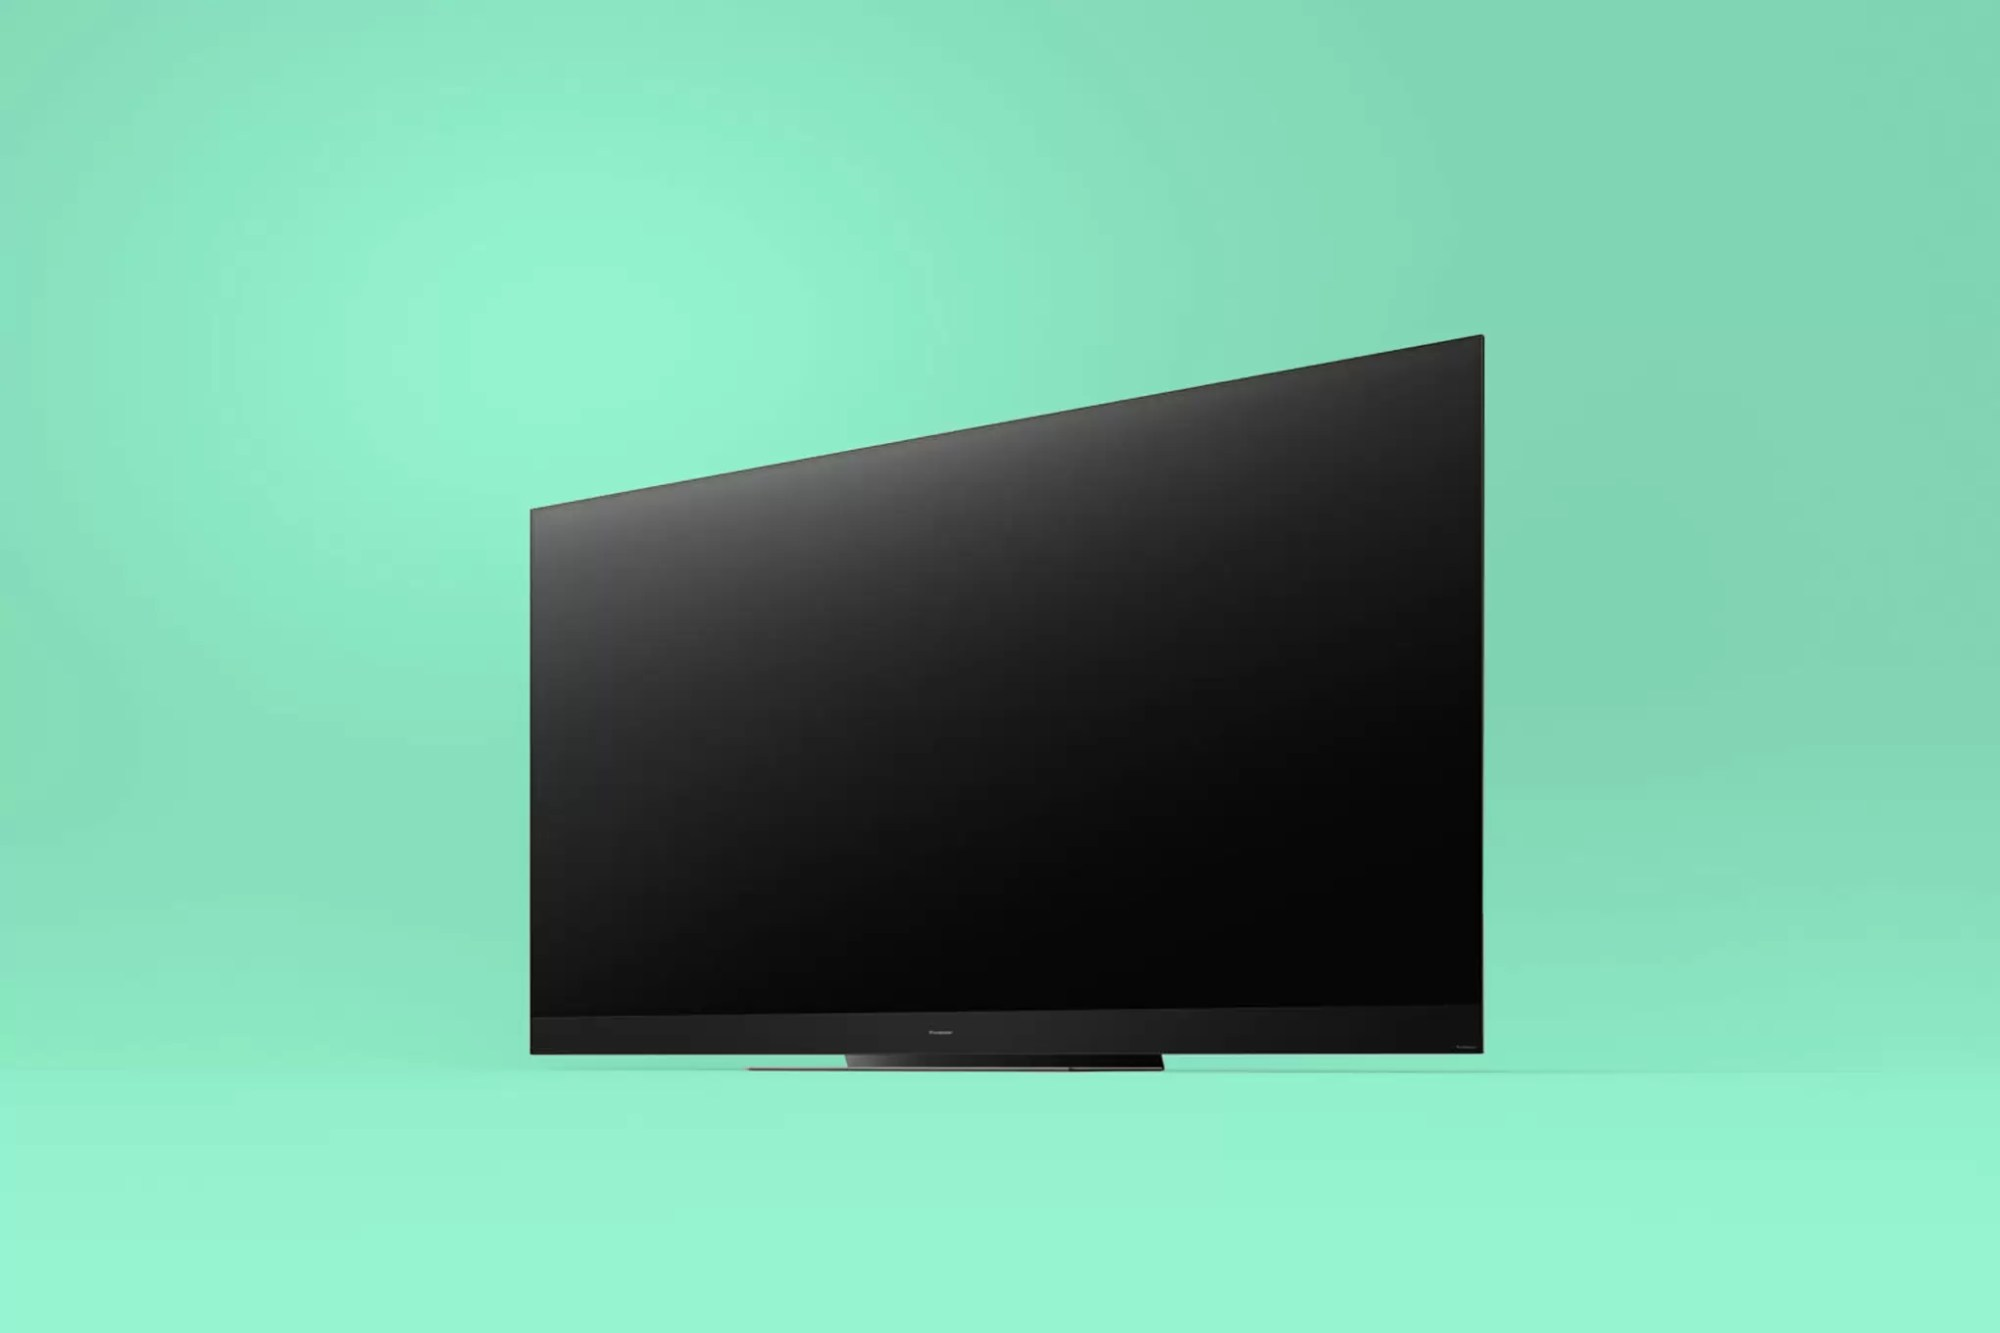 hight resolution of tvs in 2019 are about to get a lot brighter smarter and slicker